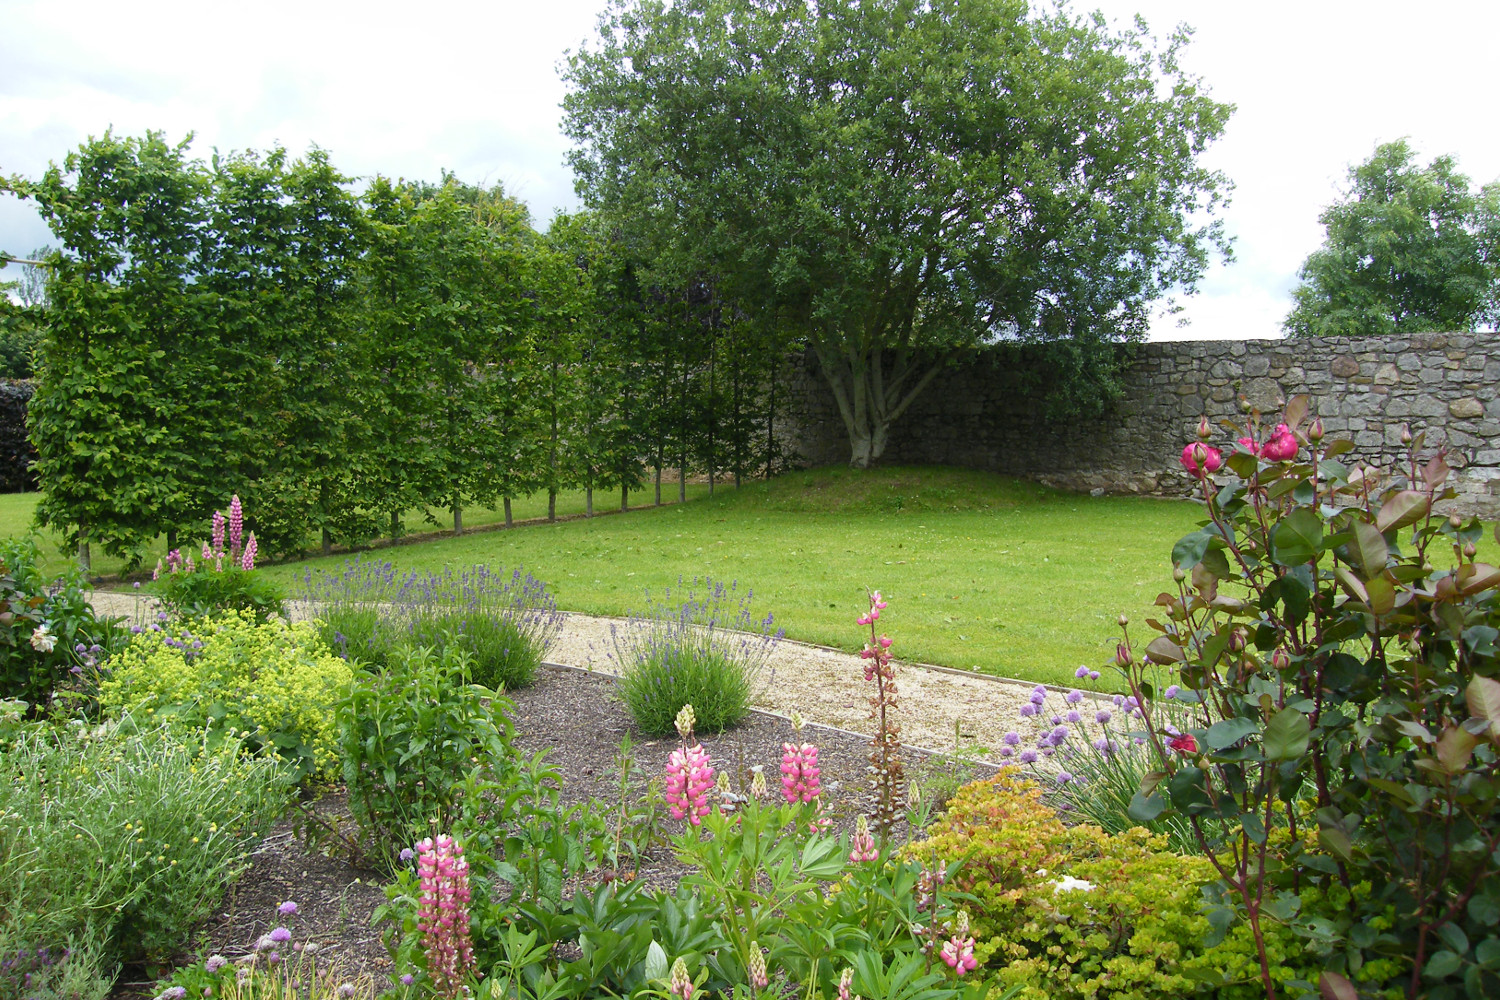 resplendent rural garden in cahir co tipperary tim austen garden designs. Black Bedroom Furniture Sets. Home Design Ideas